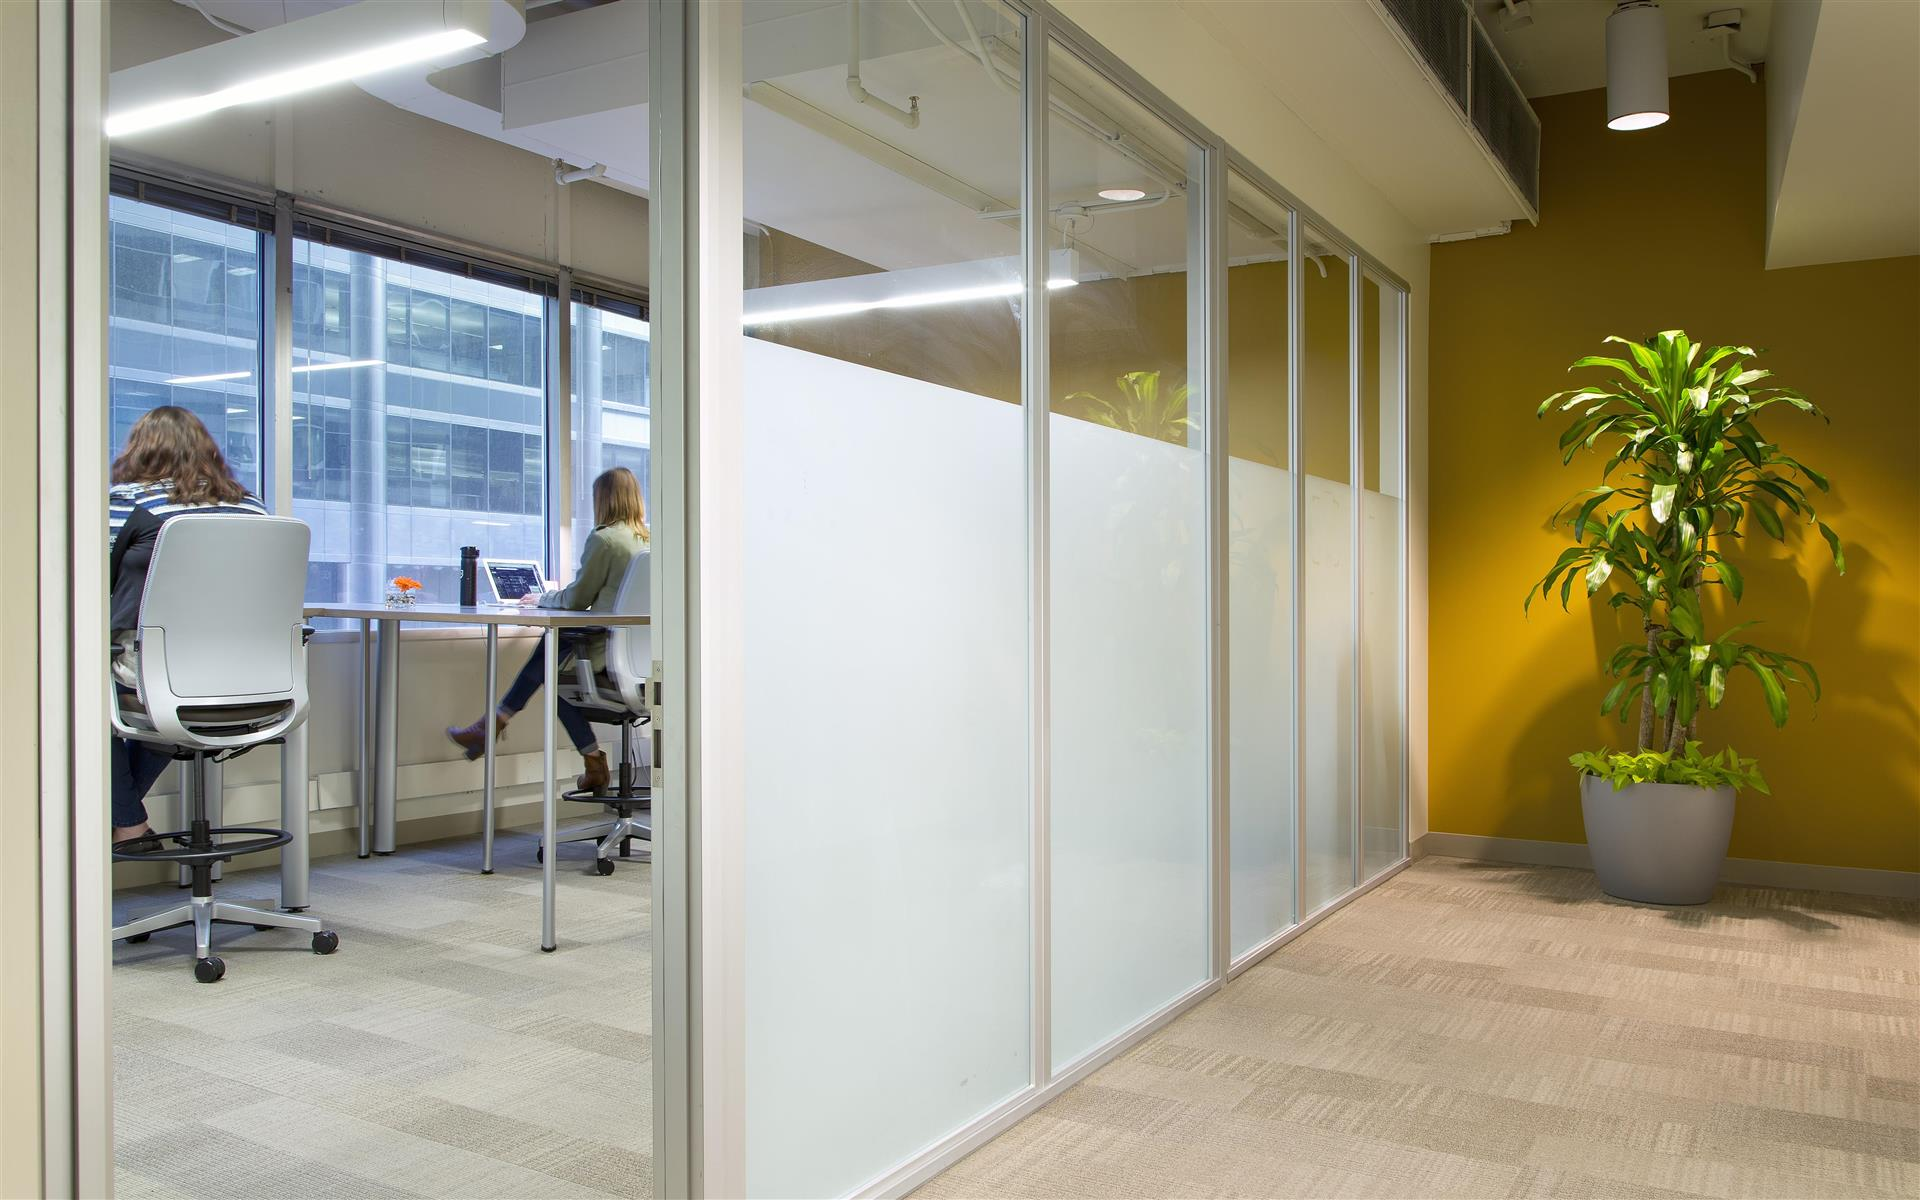 Serendipity Labs Chicago OSW - Day Pass with Coworking Plus access